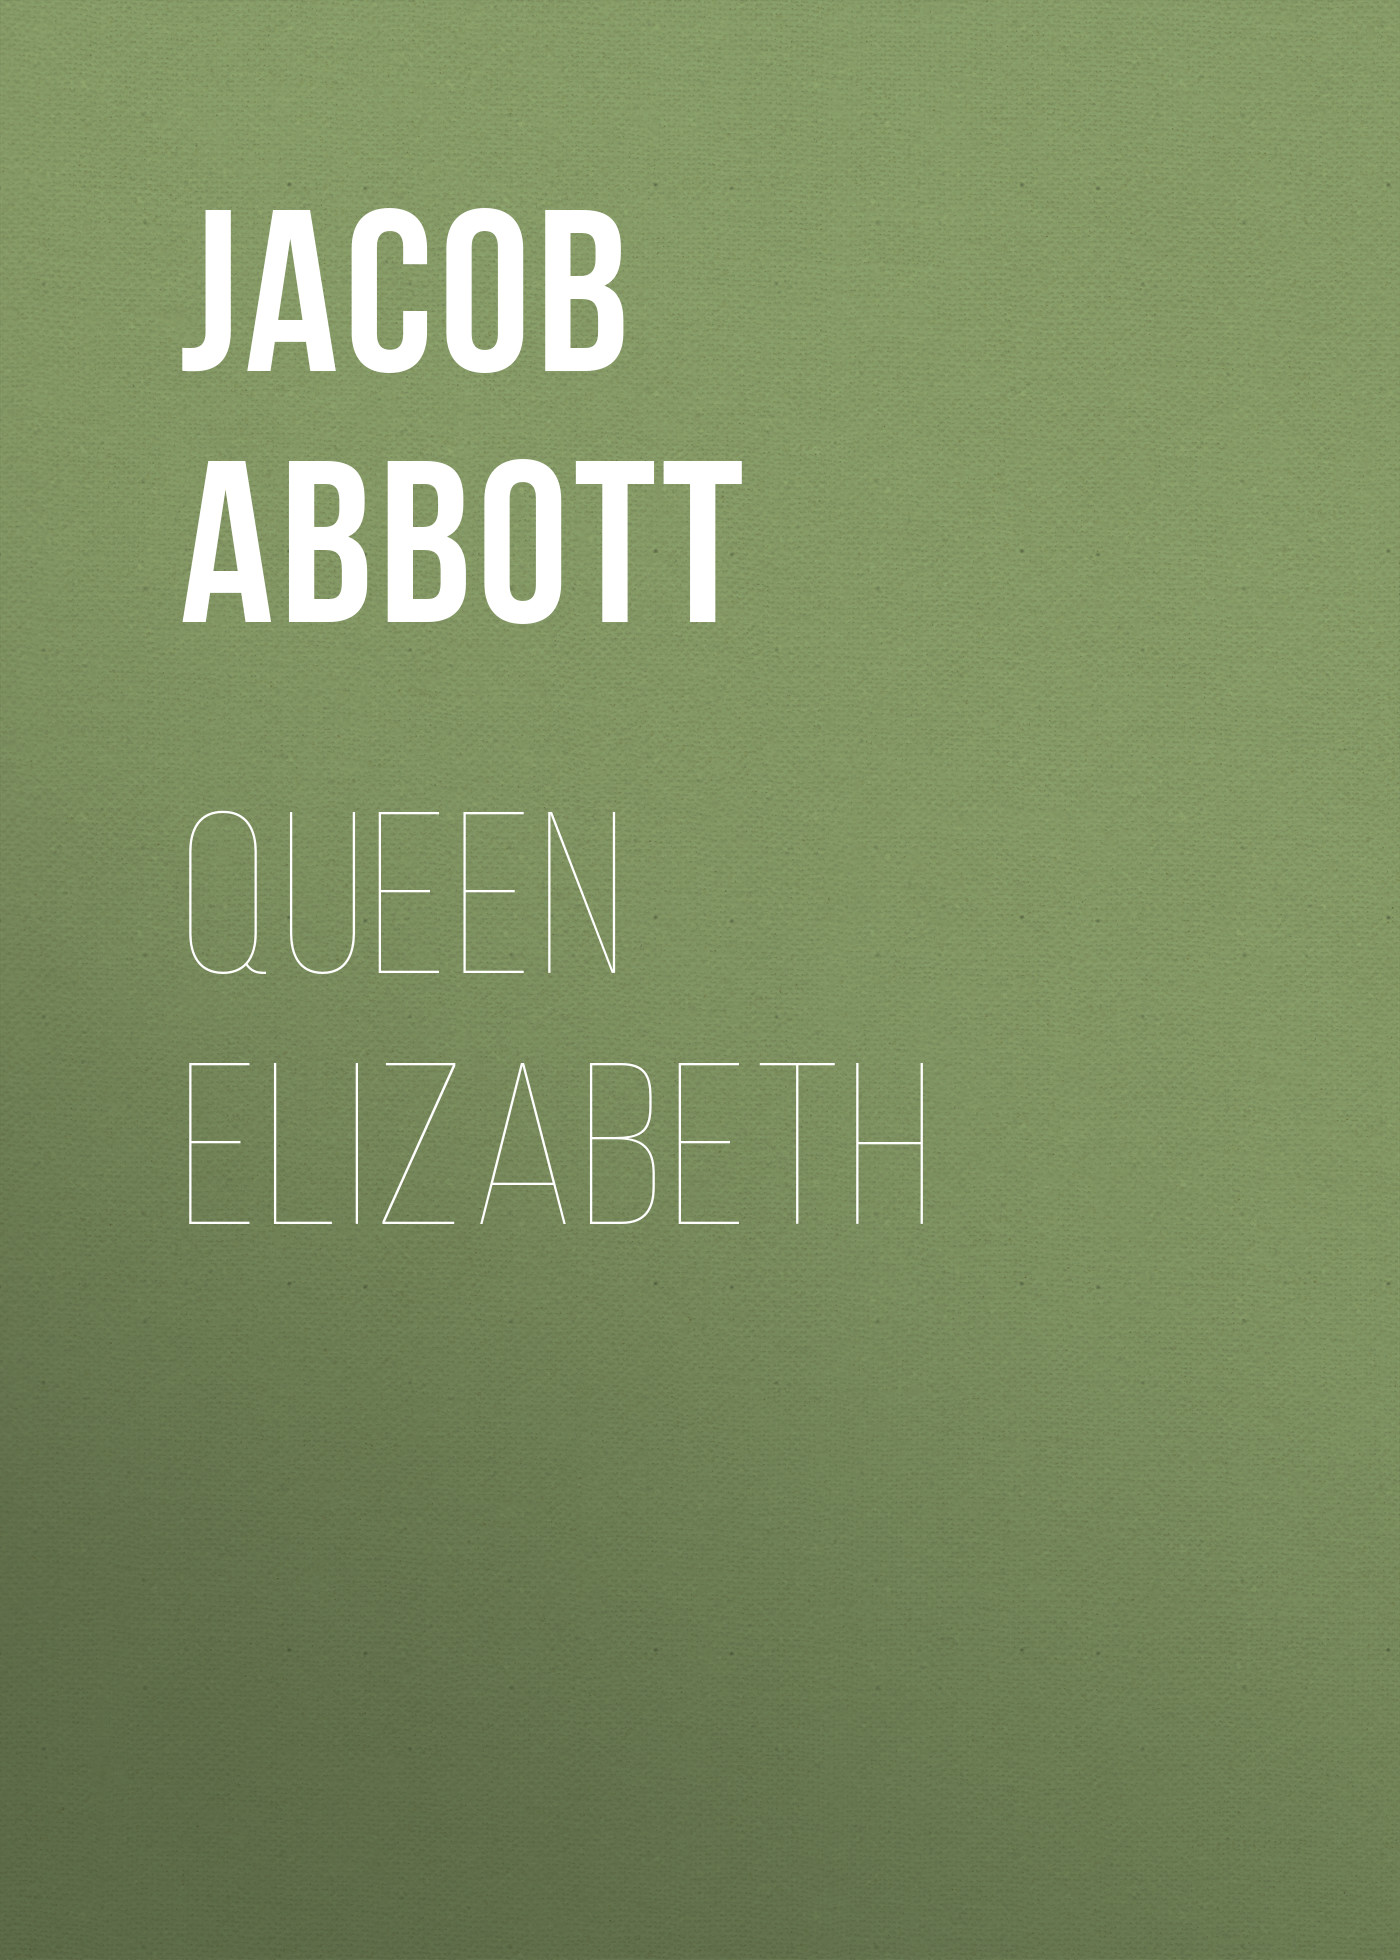 Abbott Jacob Queen Elizabeth abbott jacob cleopatra